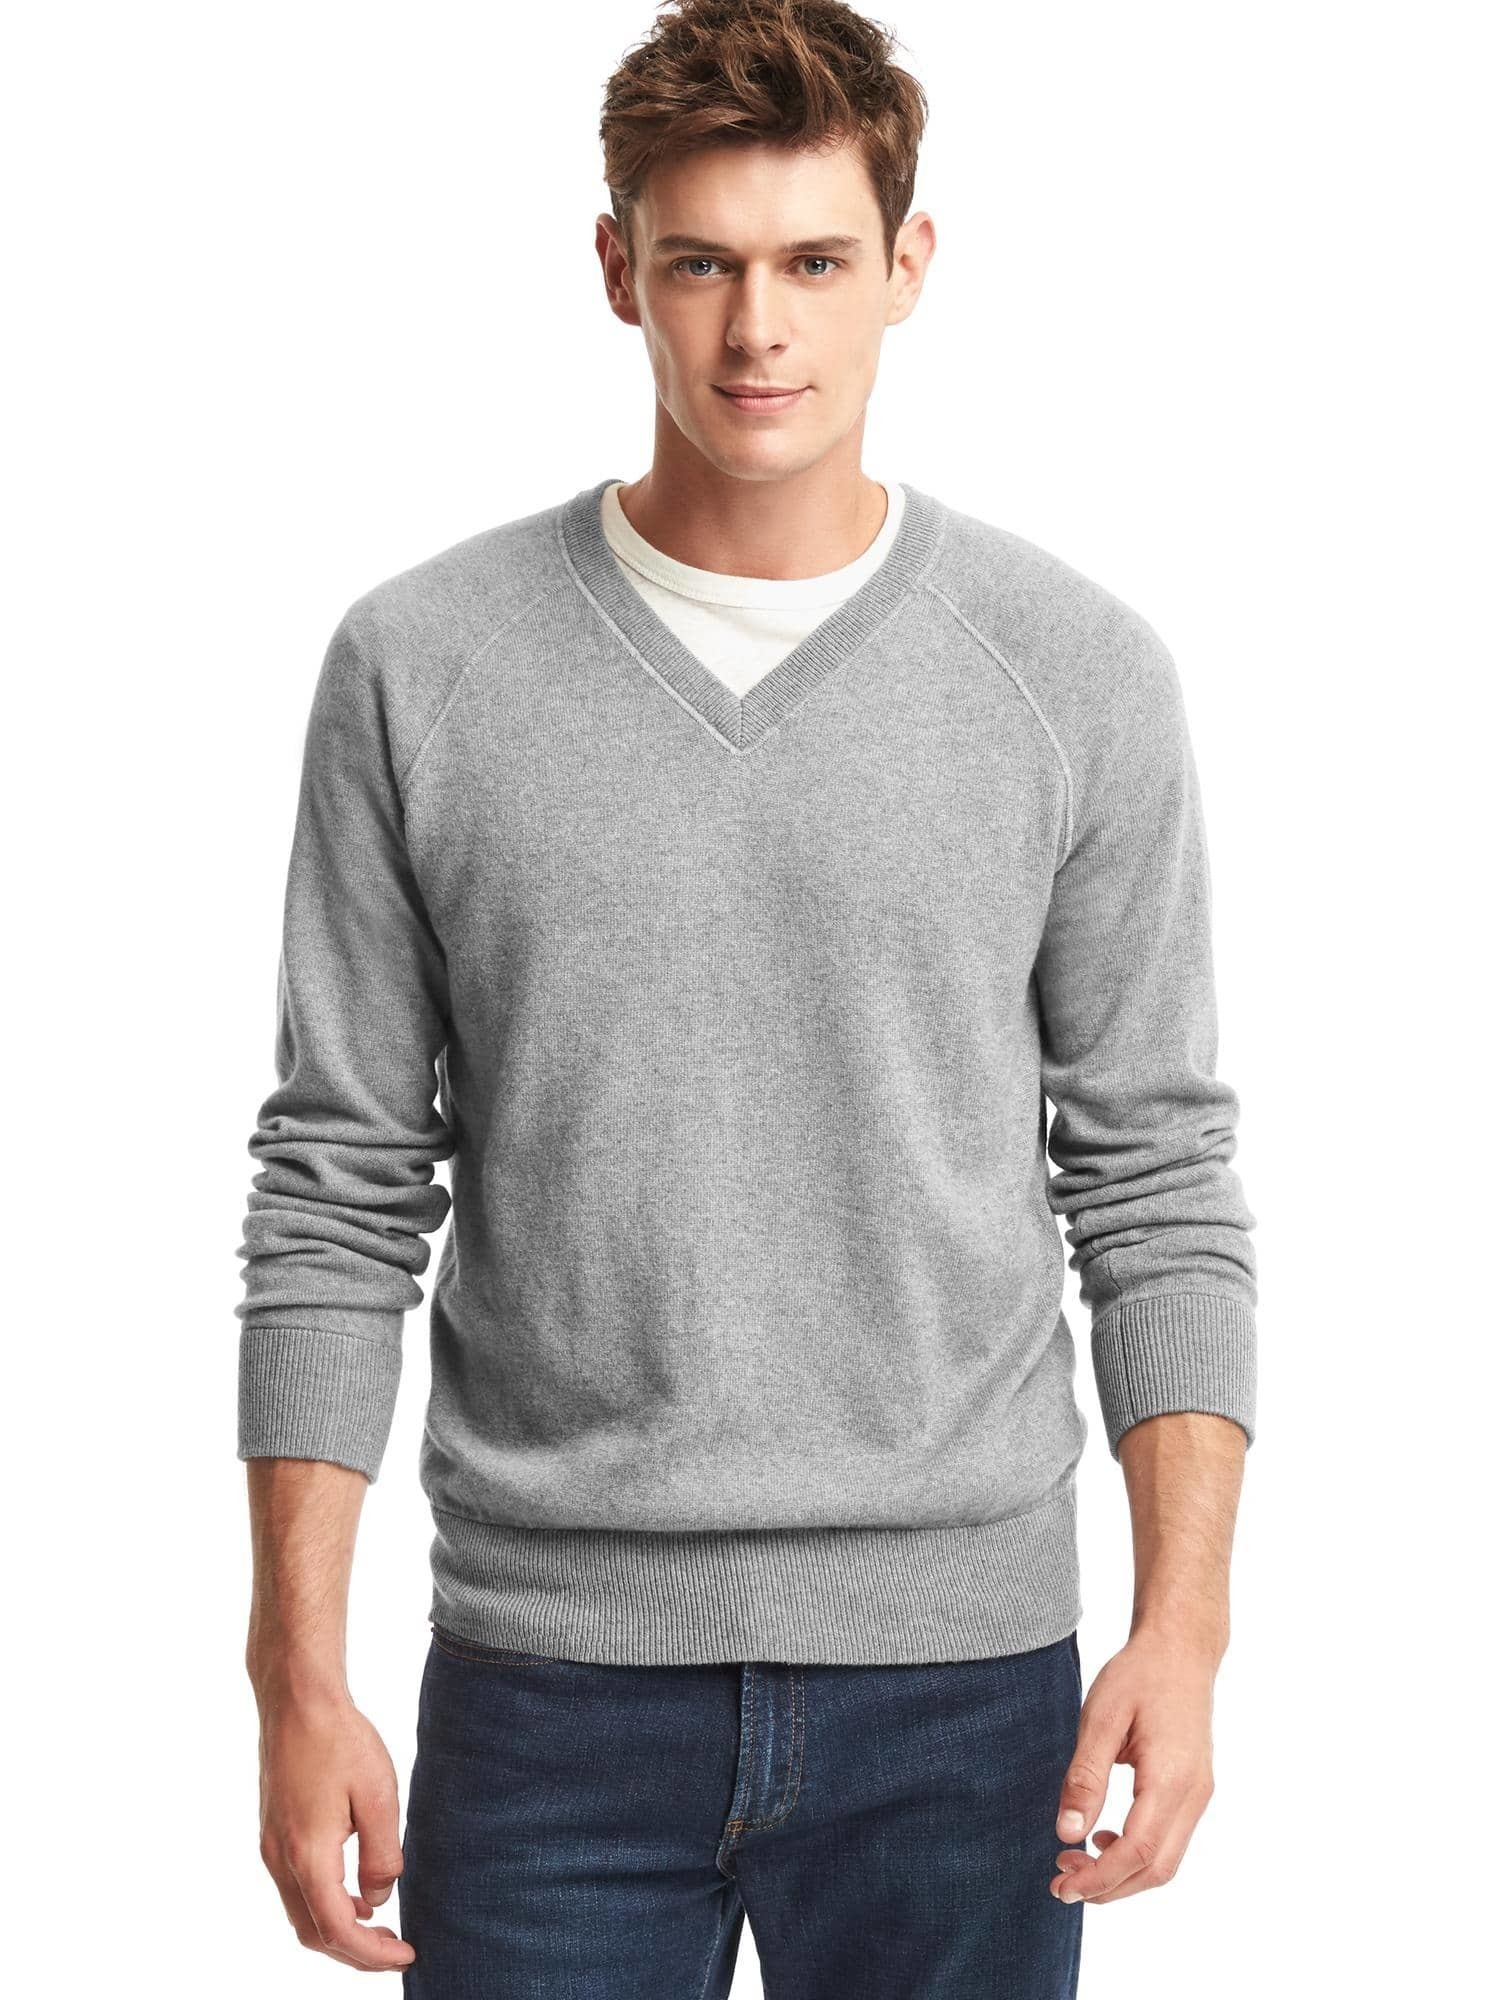 How To Wear a Crew-neck T-shirt With a Grey V-neck Sweater | Men's ...